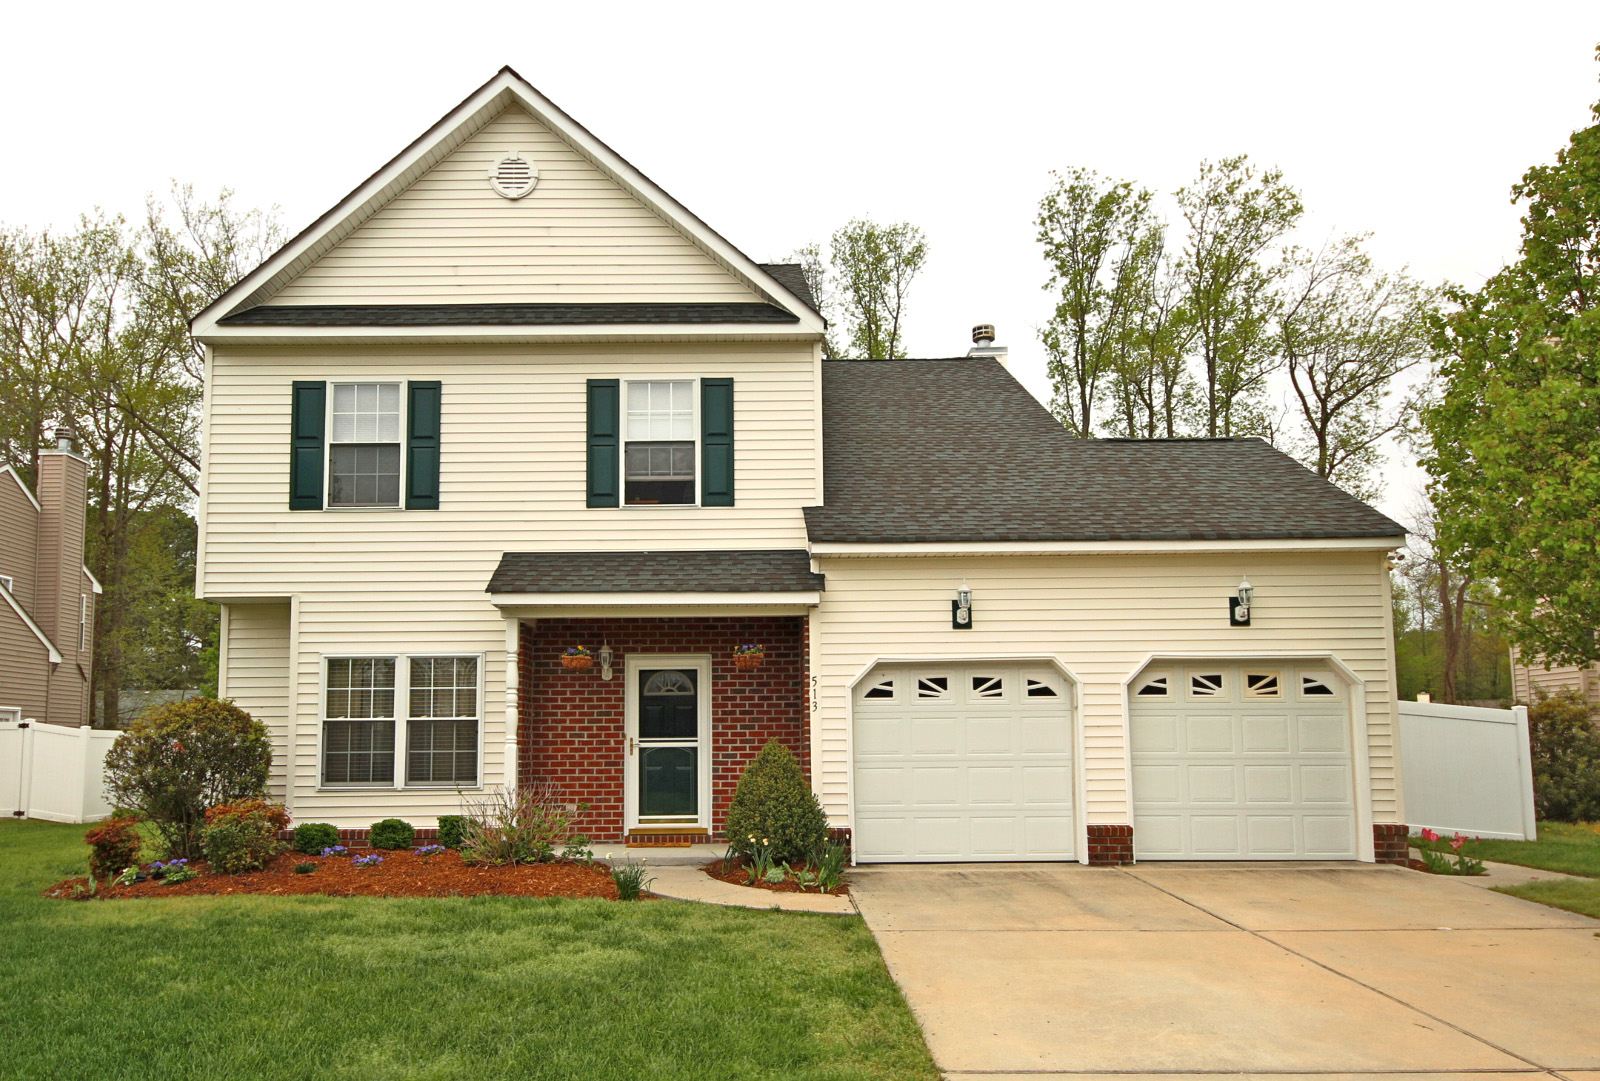 513 Liberty Court: Sold!